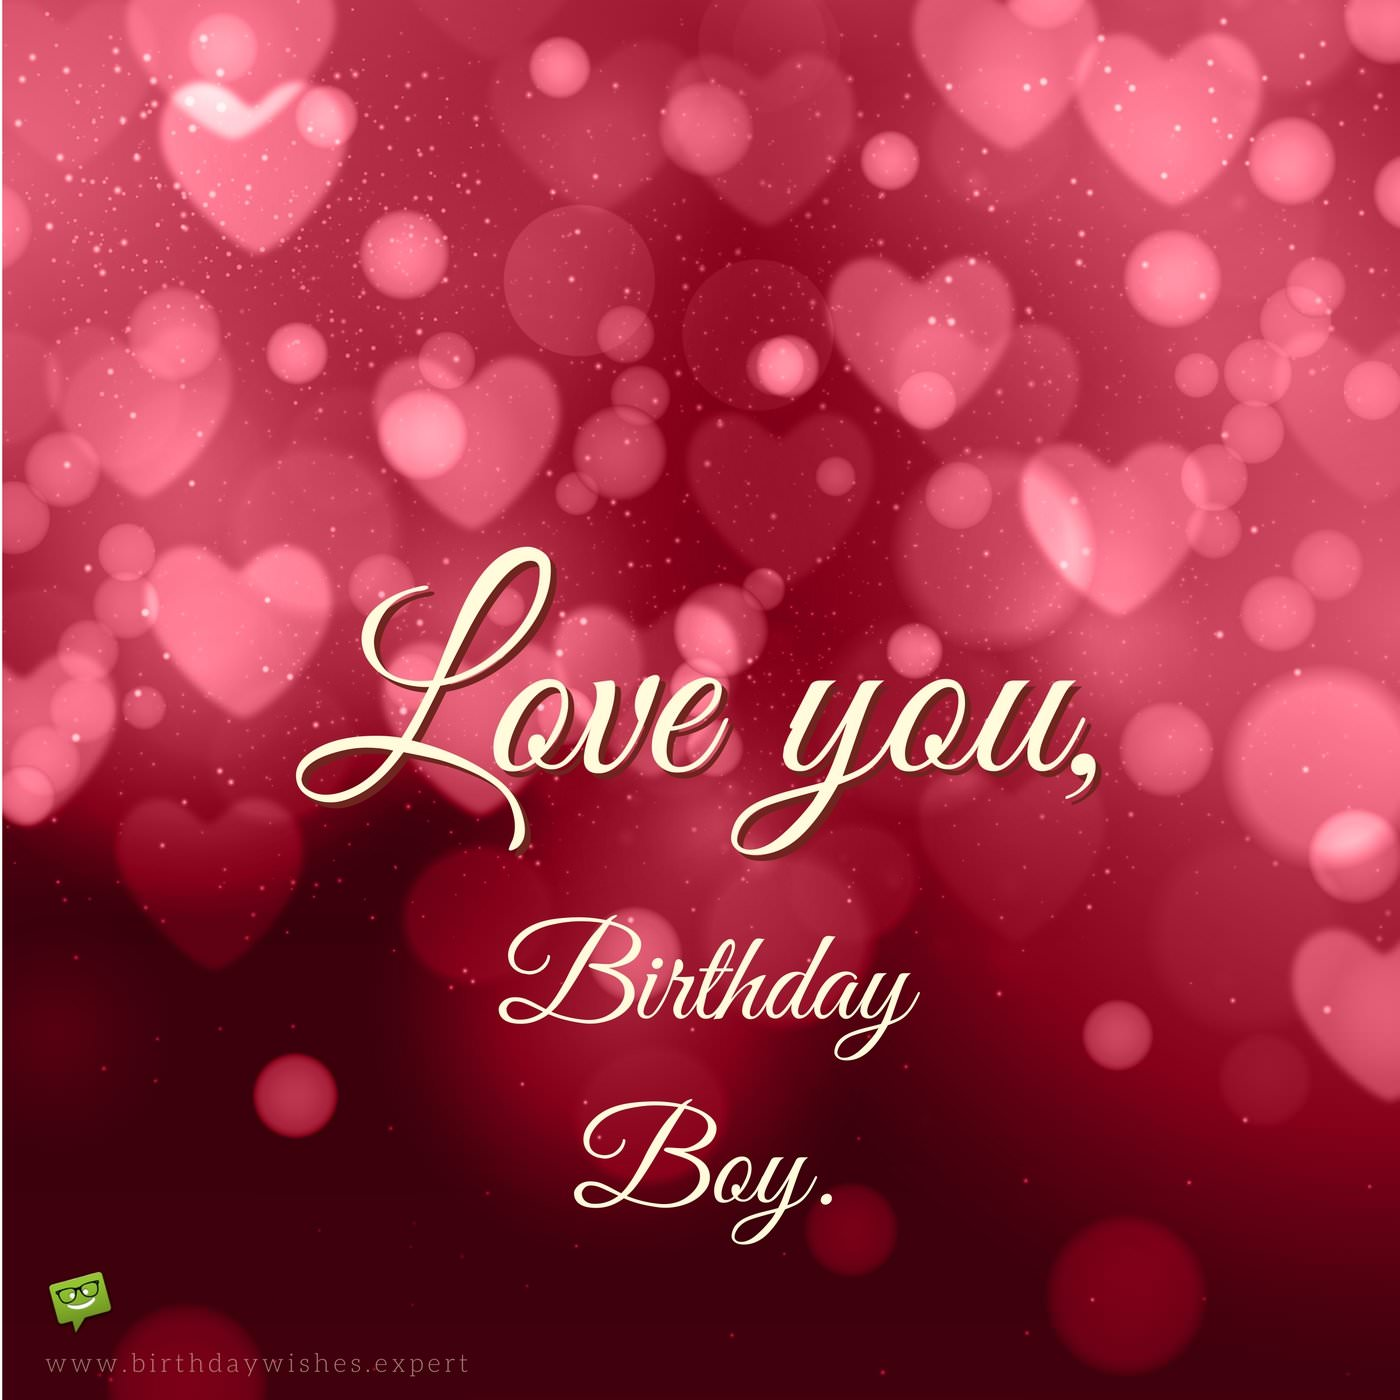 birthday wishes wallpaper for lover ; Birthday-wish-for-boyfriend-on-background-with-red-hearts